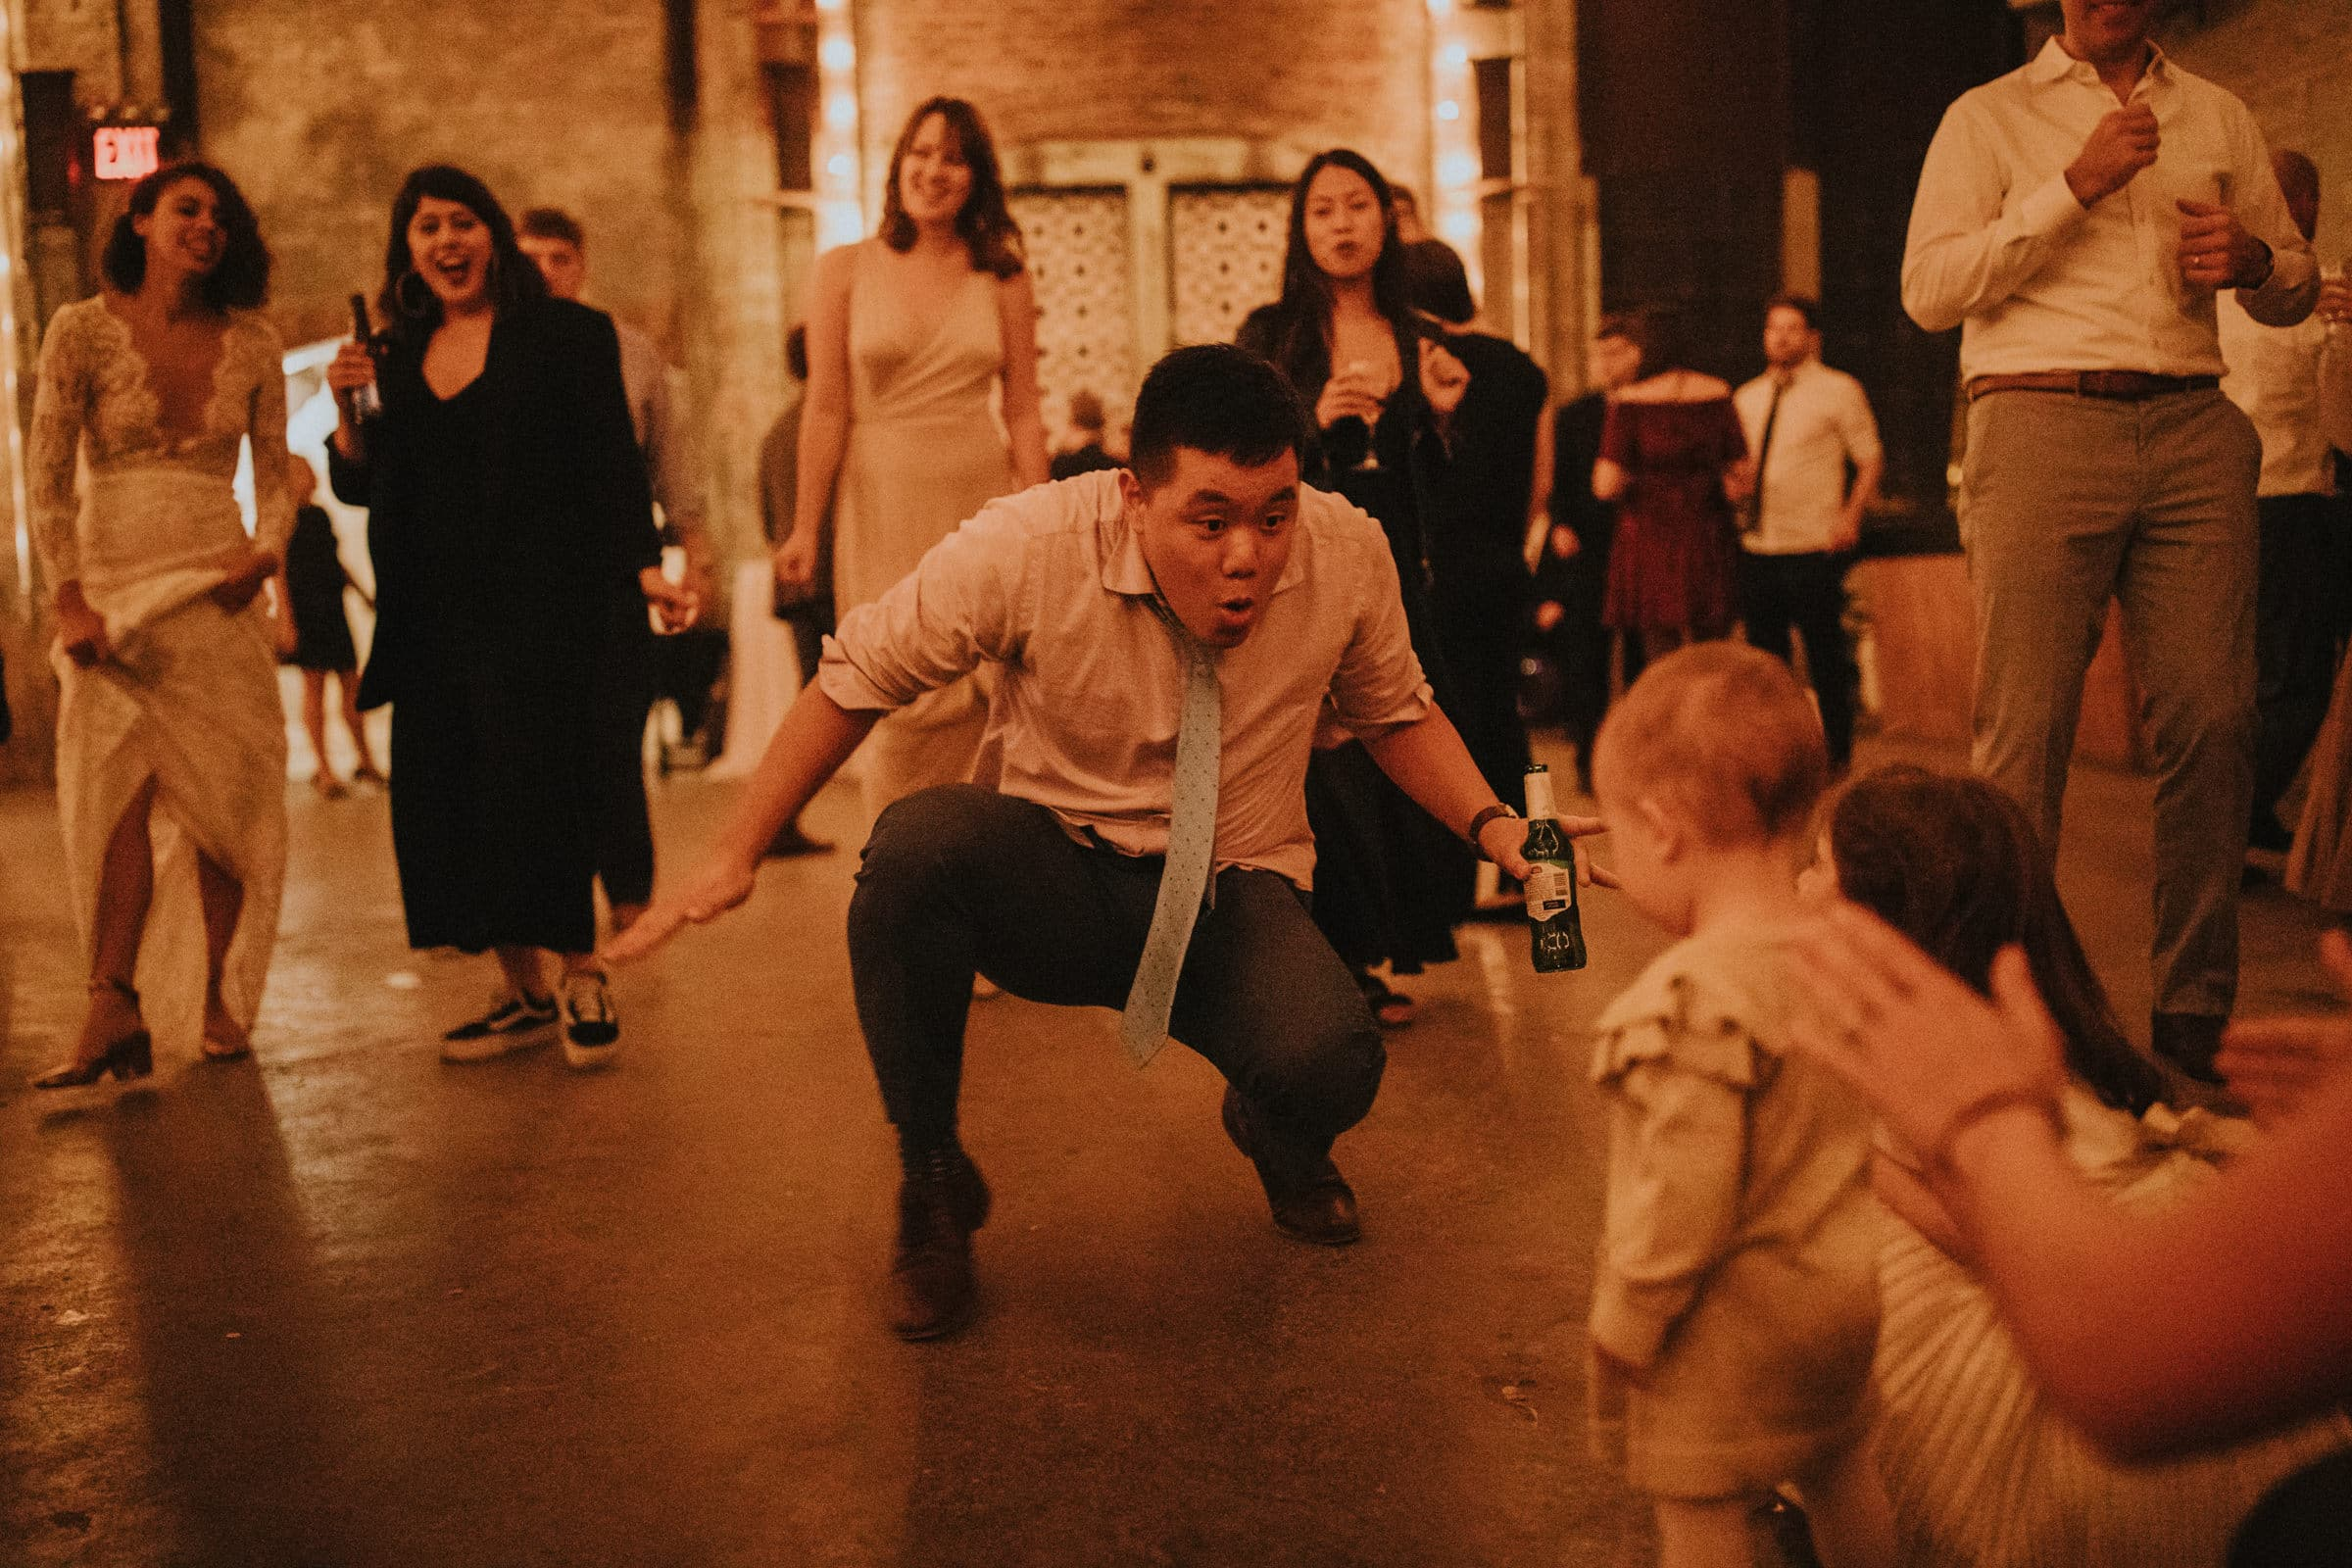 A wedding guest is dancing with children.